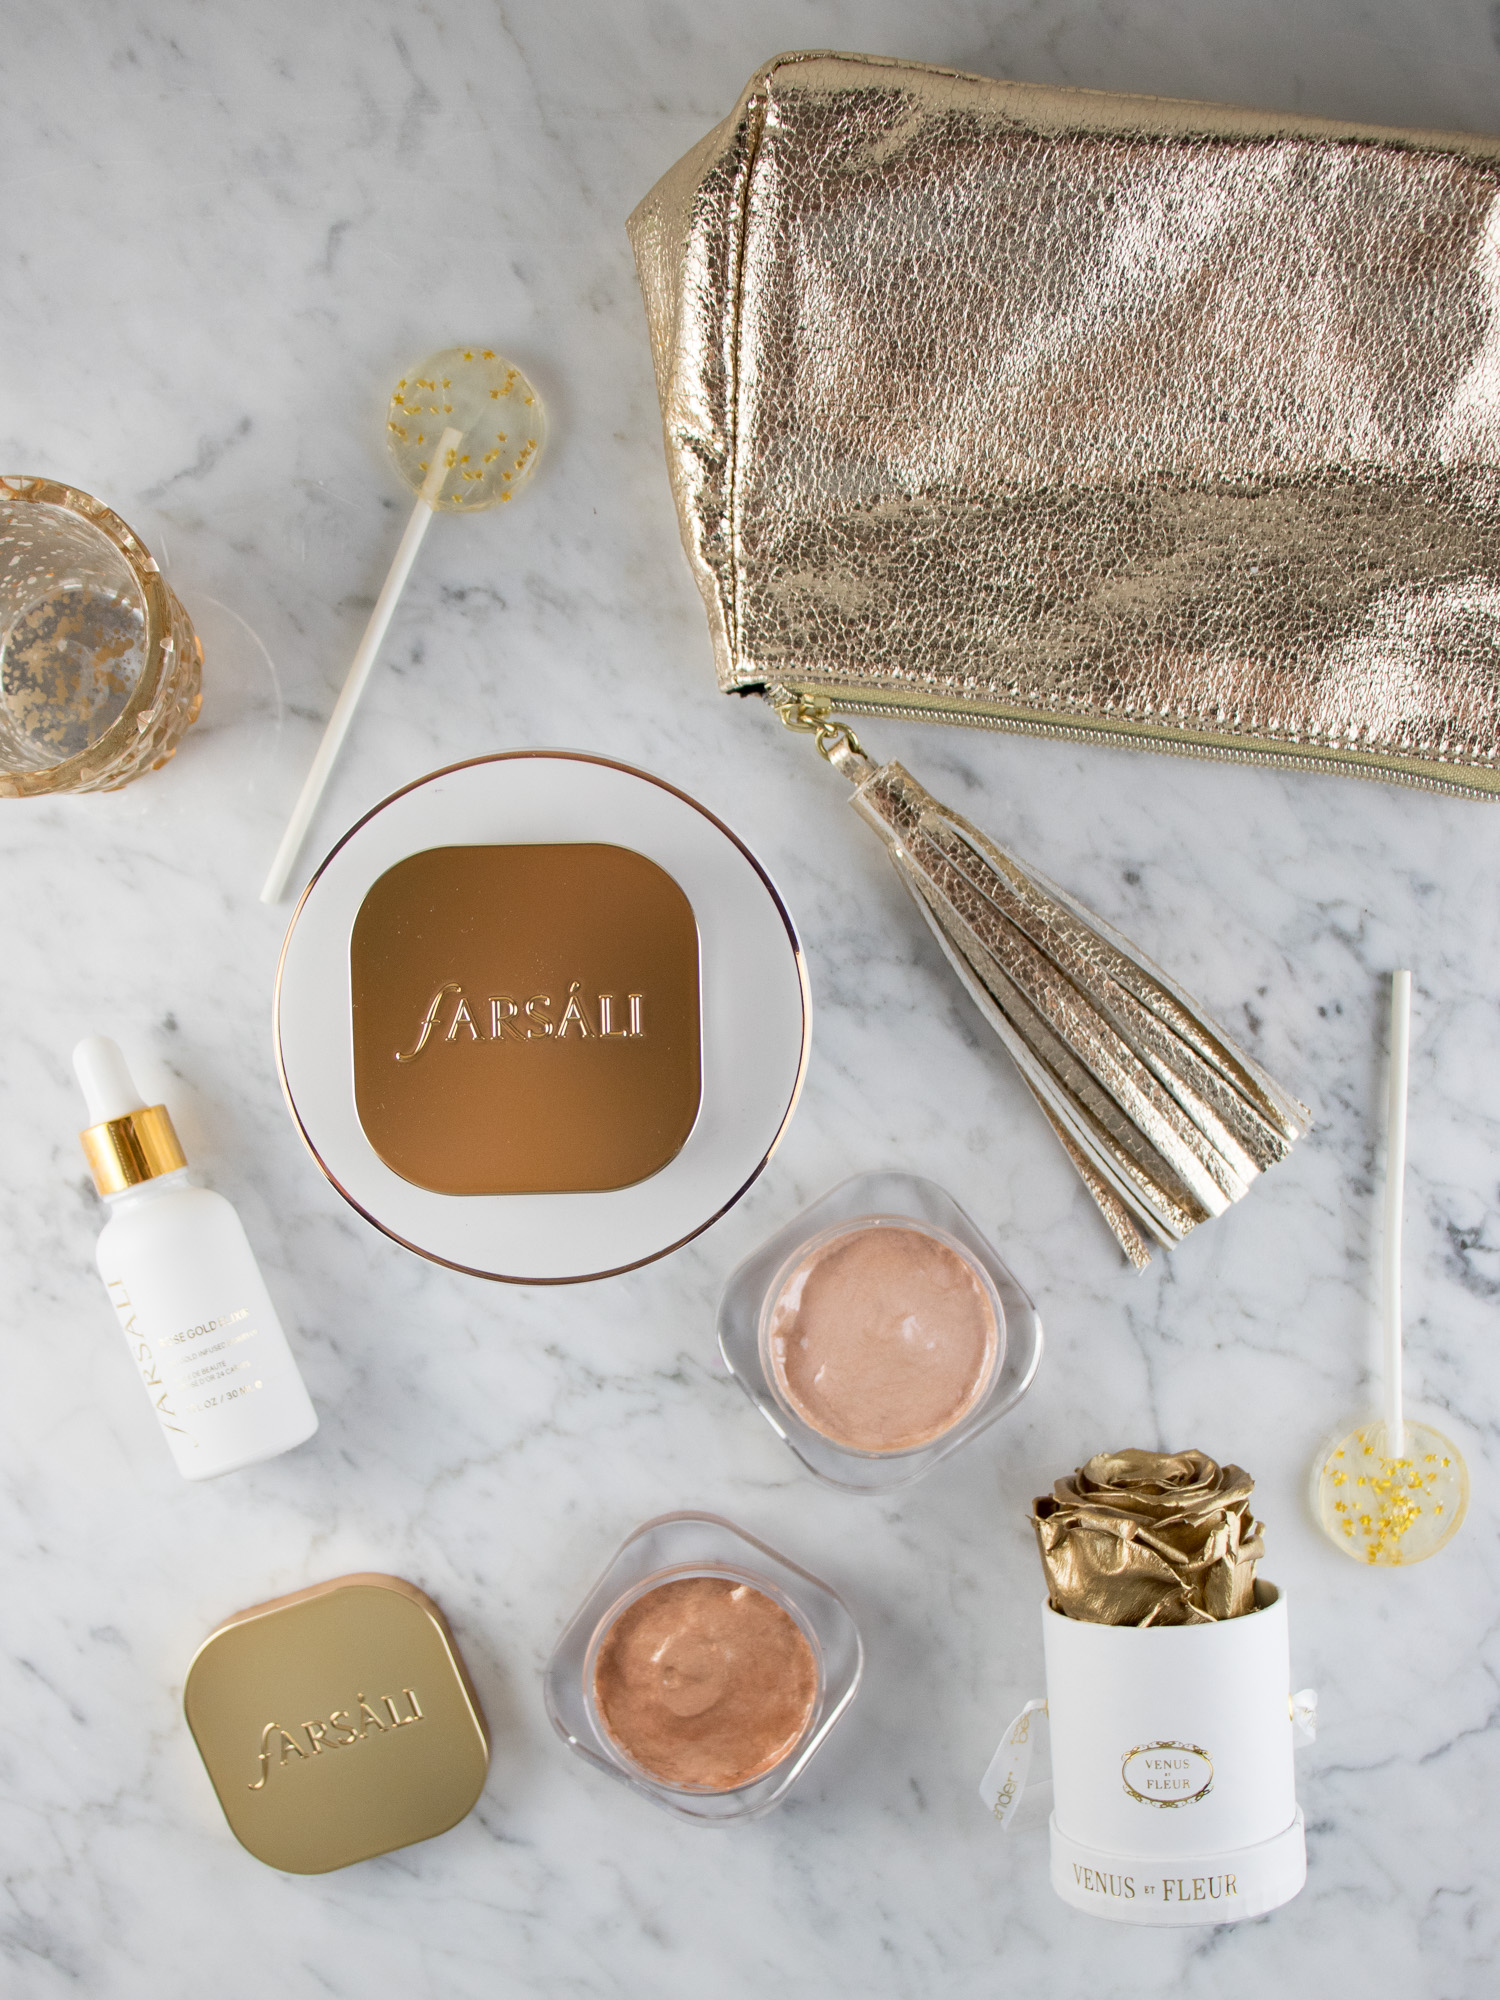 Getting to Know FARSÁLI + Jelly Beam Highlighter